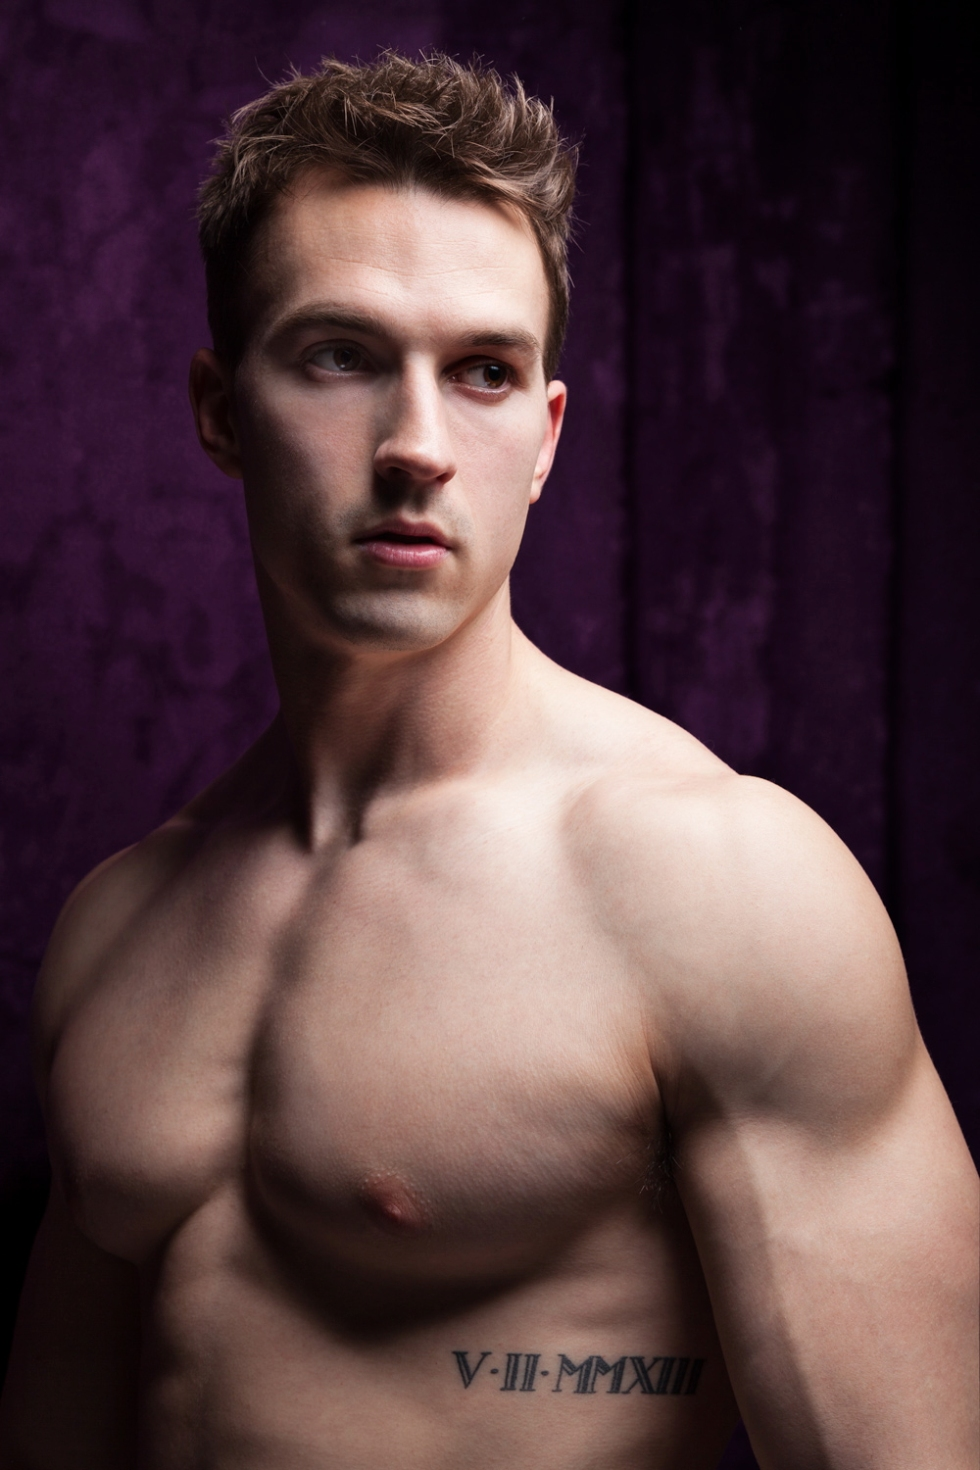 """Every single image is turning viral from Paris based photographer Mateo Armand. Here's """"Purple Night"""" a portrait with stunning beautiful male model Romain Labard. Can't judge, just admire."""